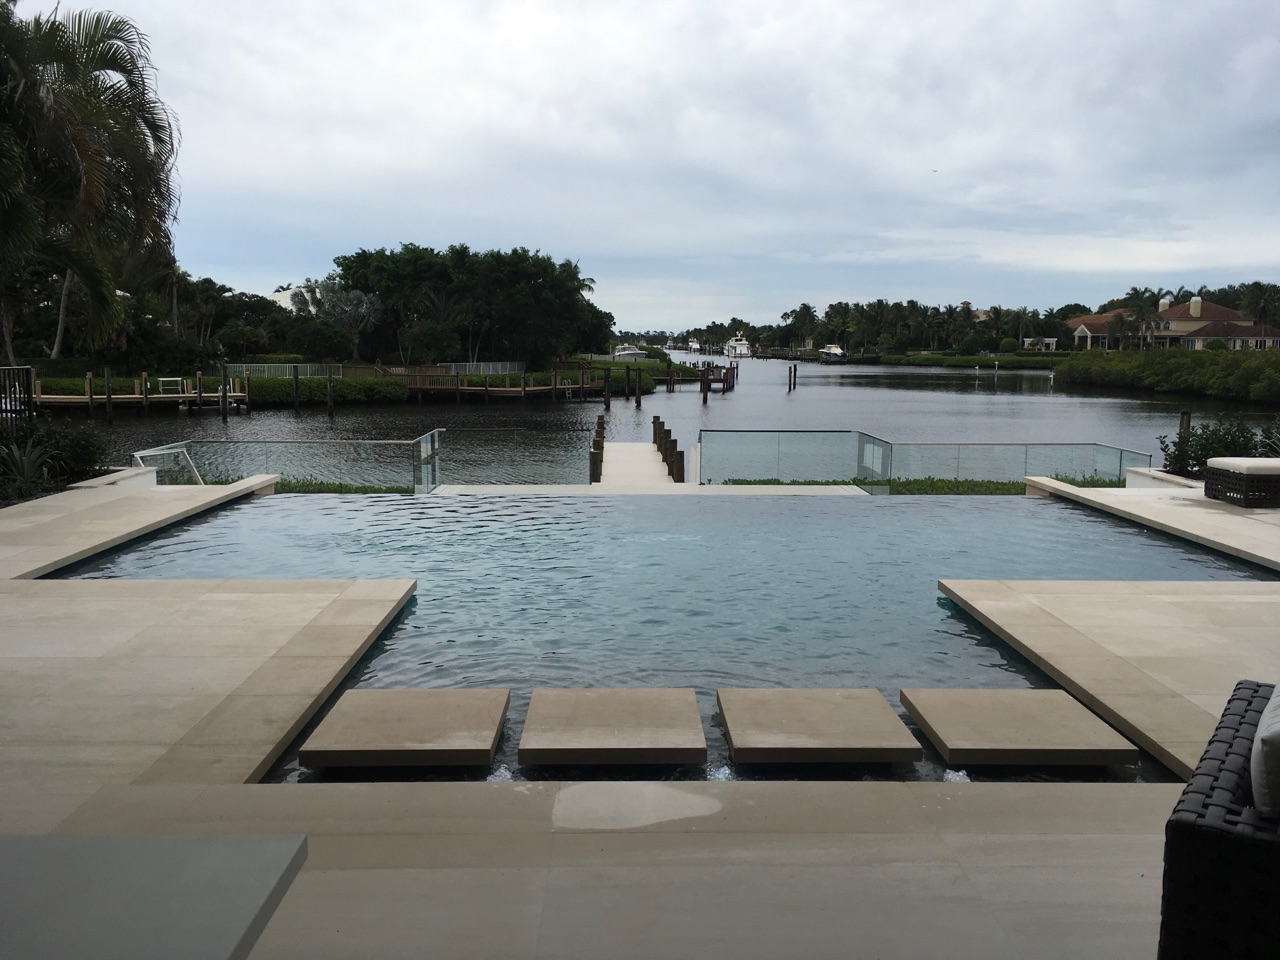 rhr pools of jupiter fl gorgeous infinity edge pool with steps overlooking the water